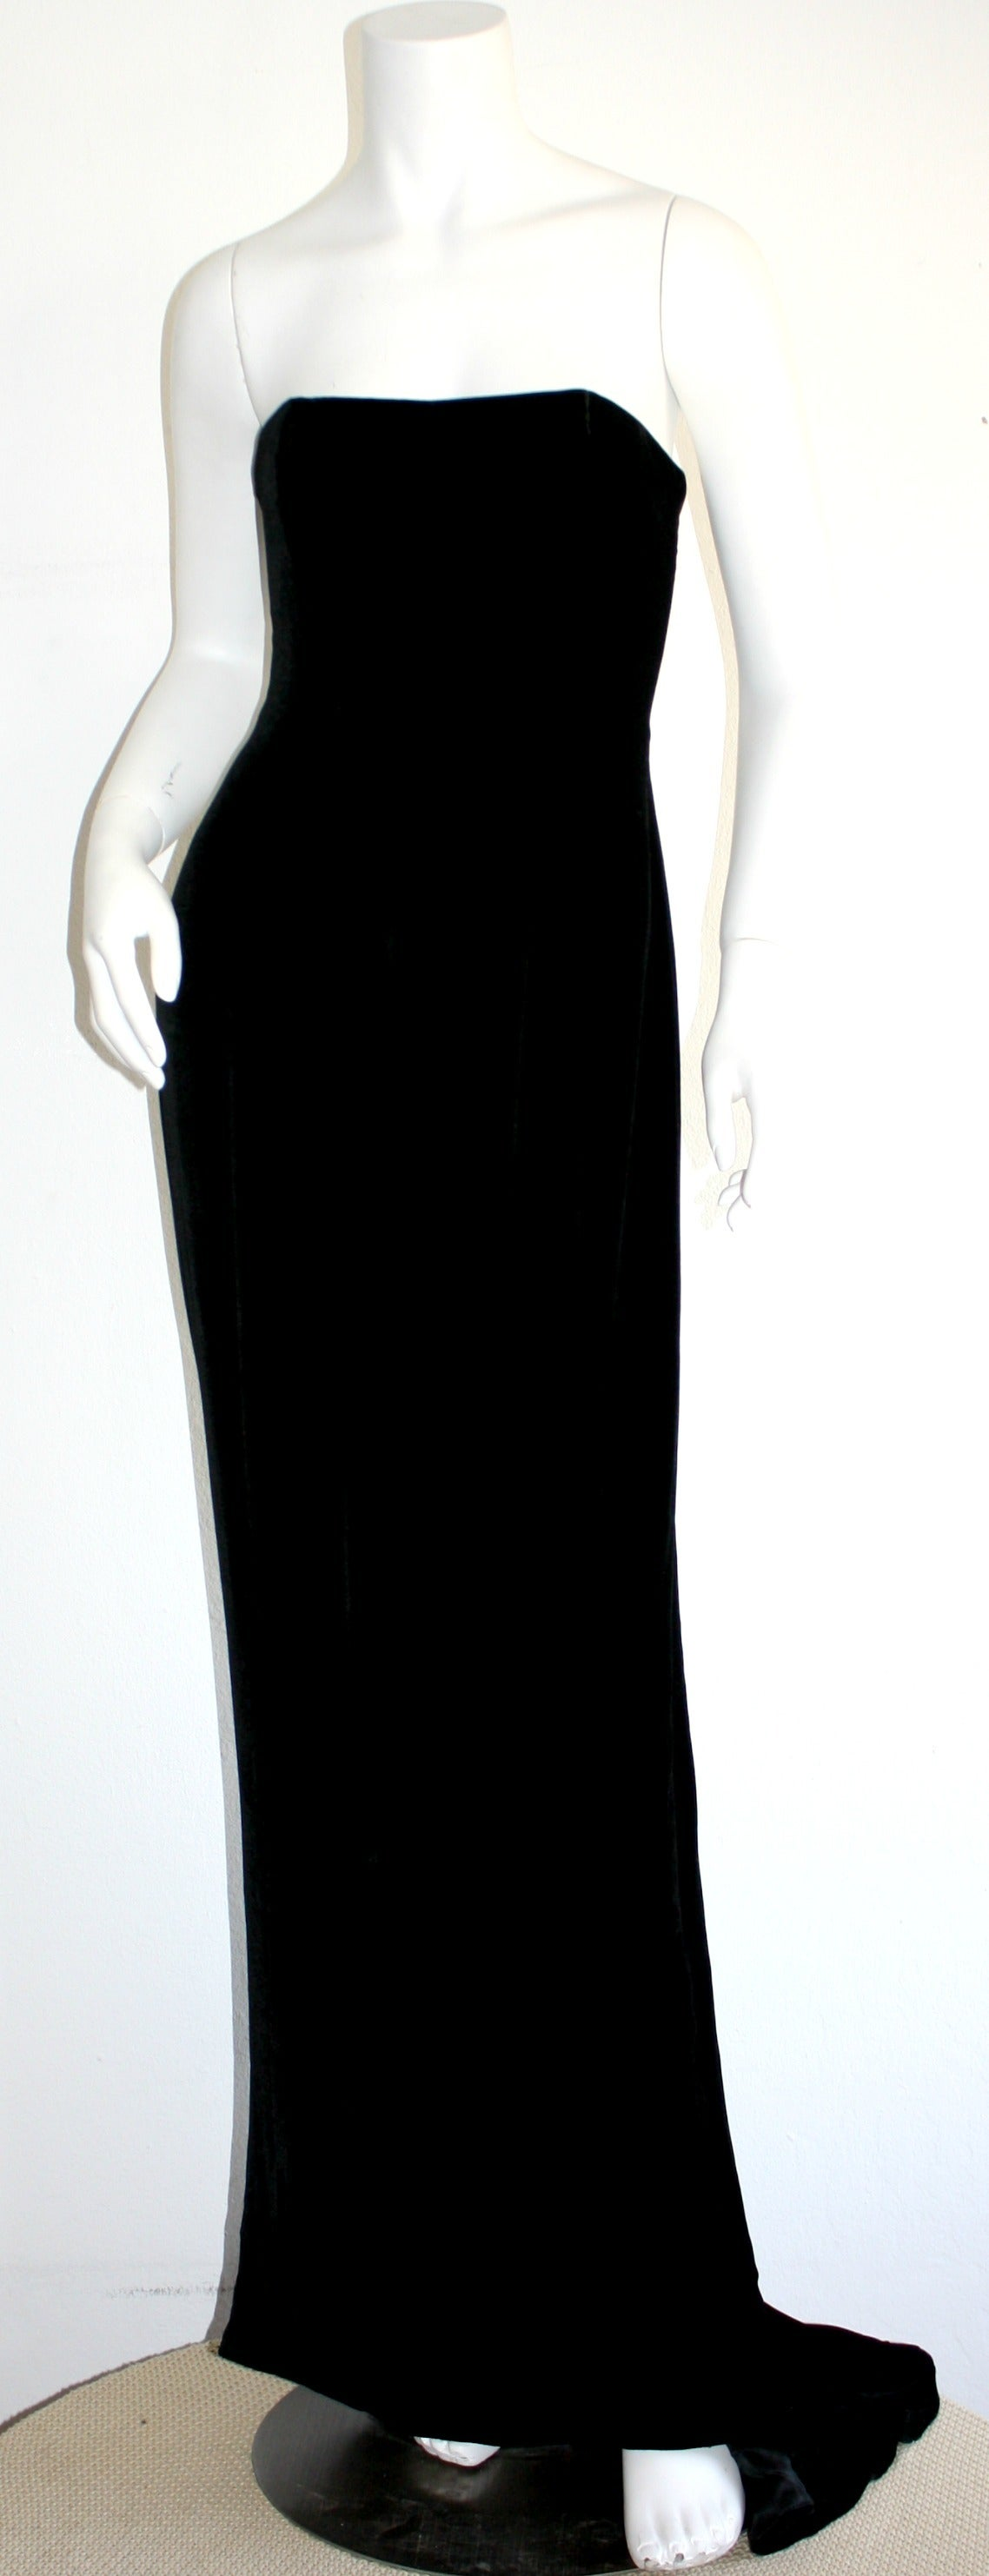 Stunning 1990s James Purcell Black Silk Velvet Strapless Gown w/ Dramatic Train 4